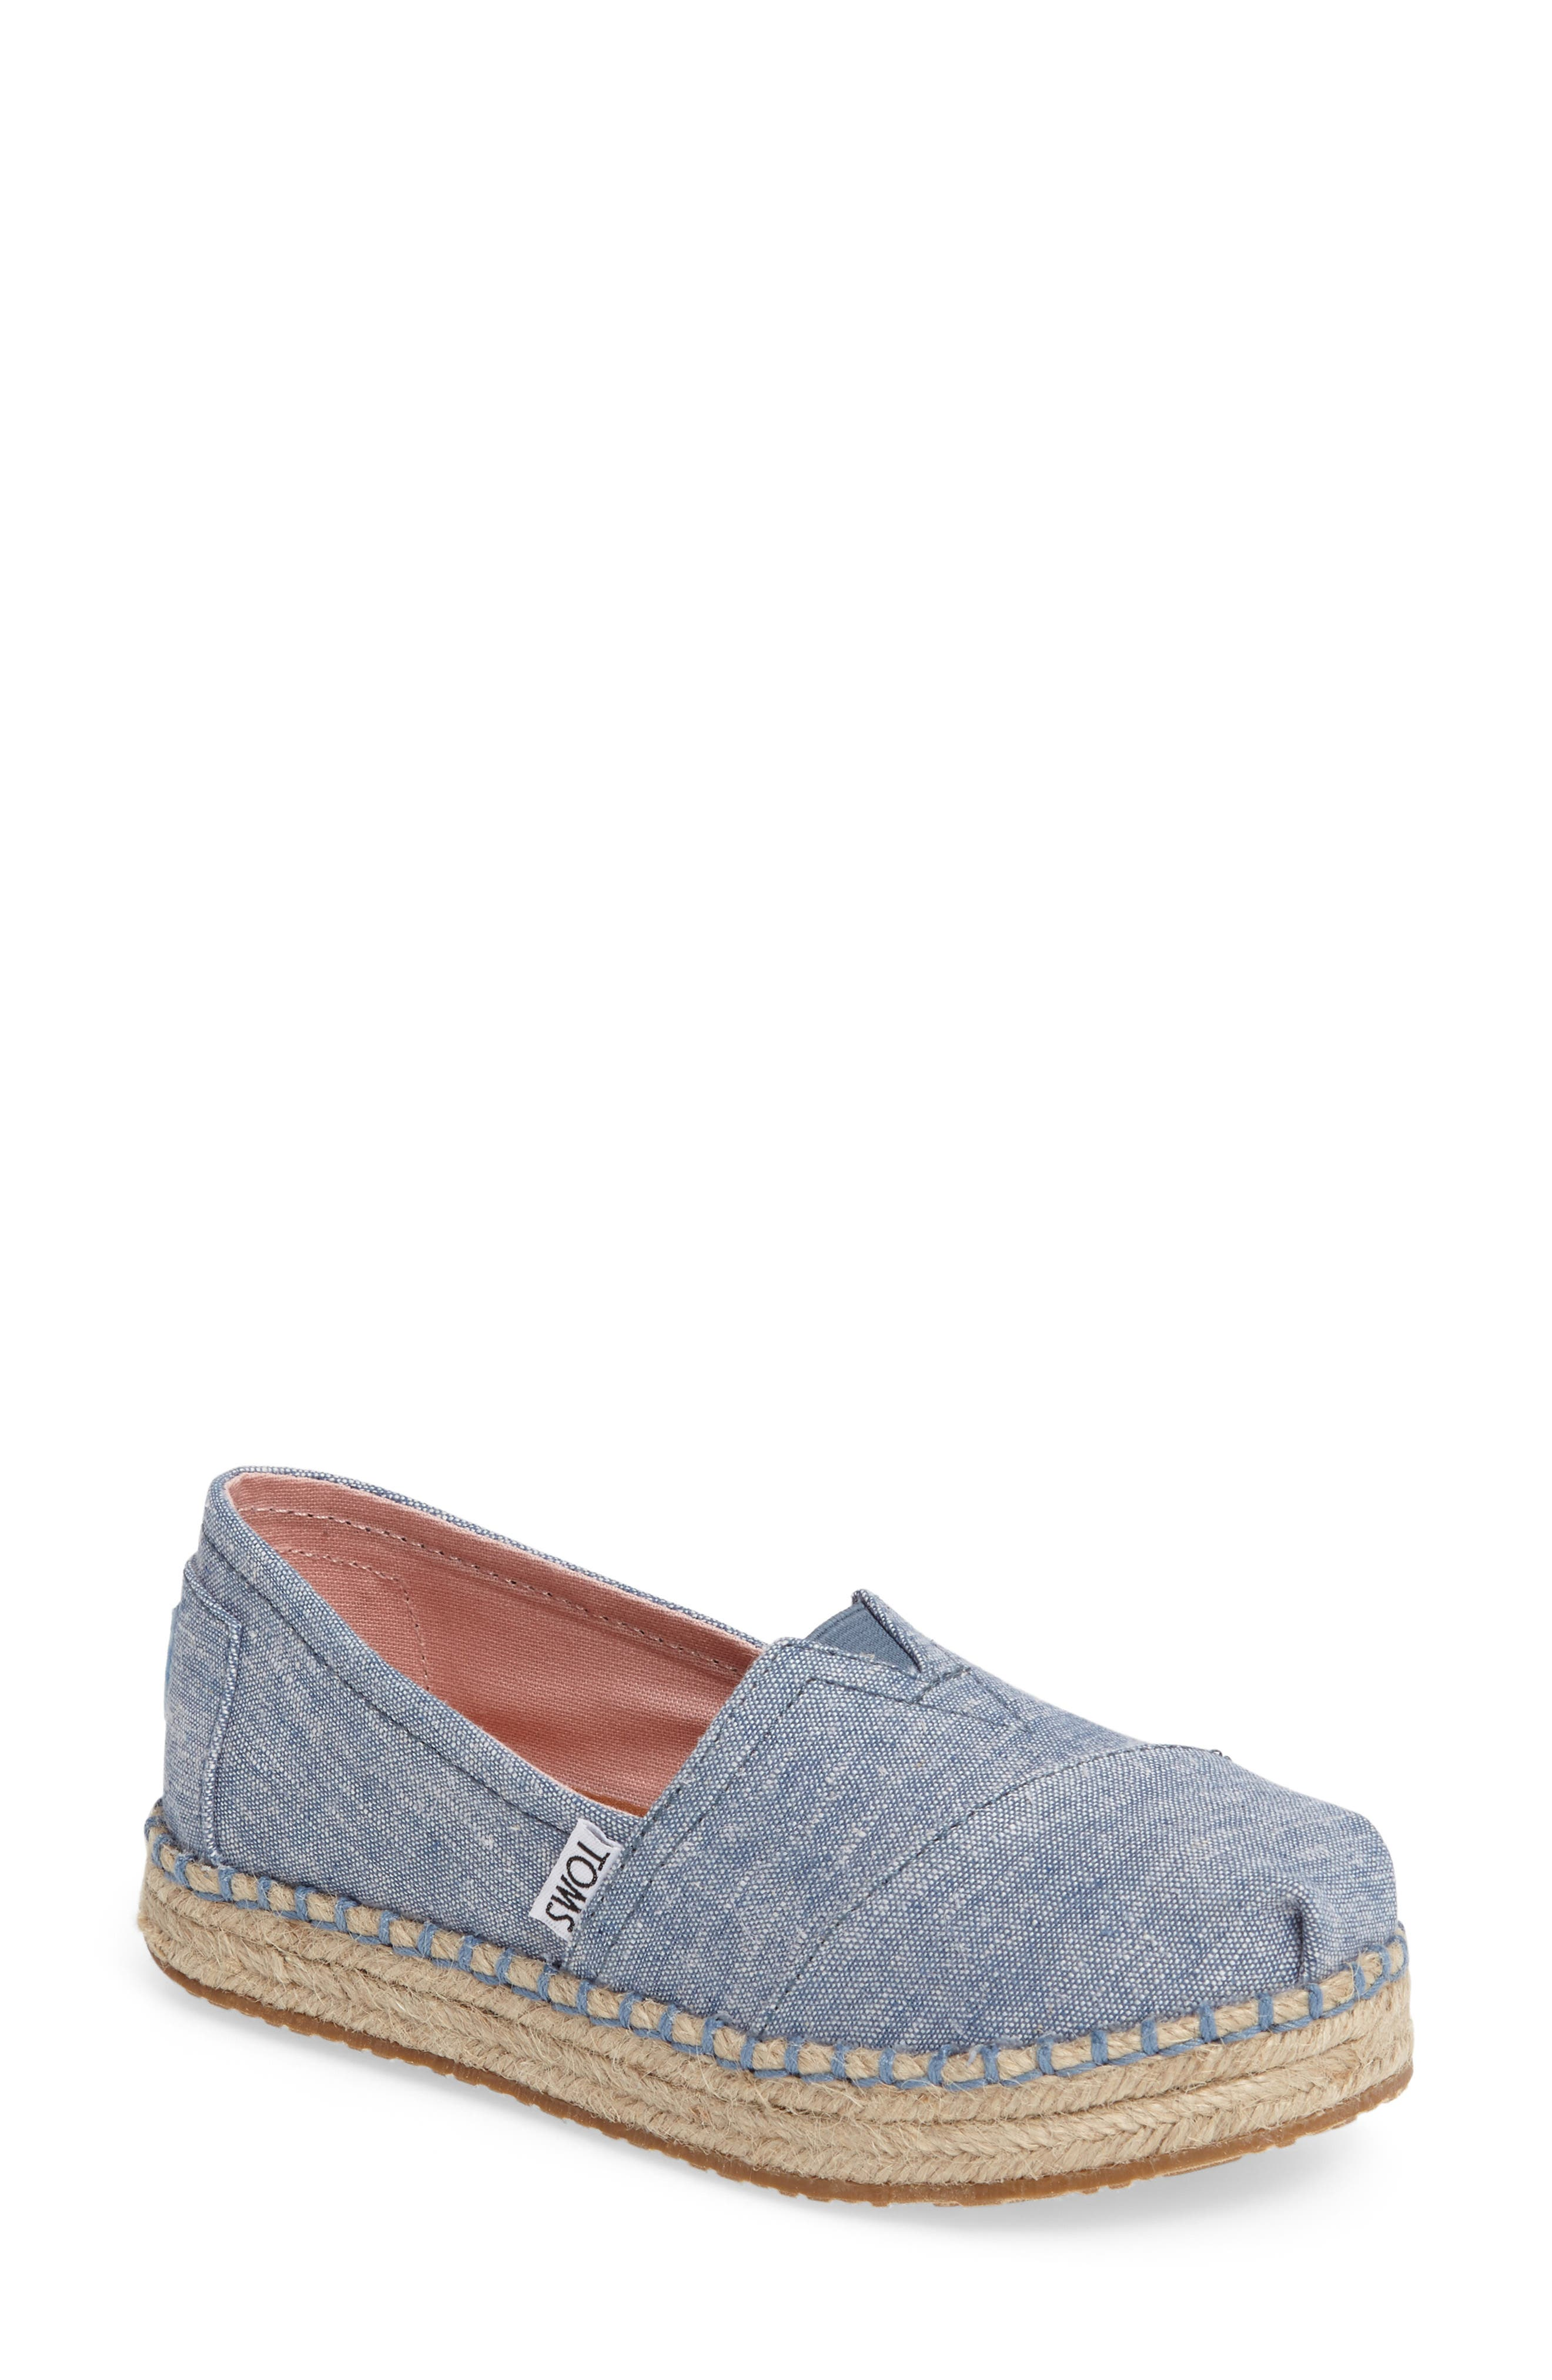 TOMS Platform Espadrille Slip-On (Walker, Toddler, Little Kid & Big Kid)